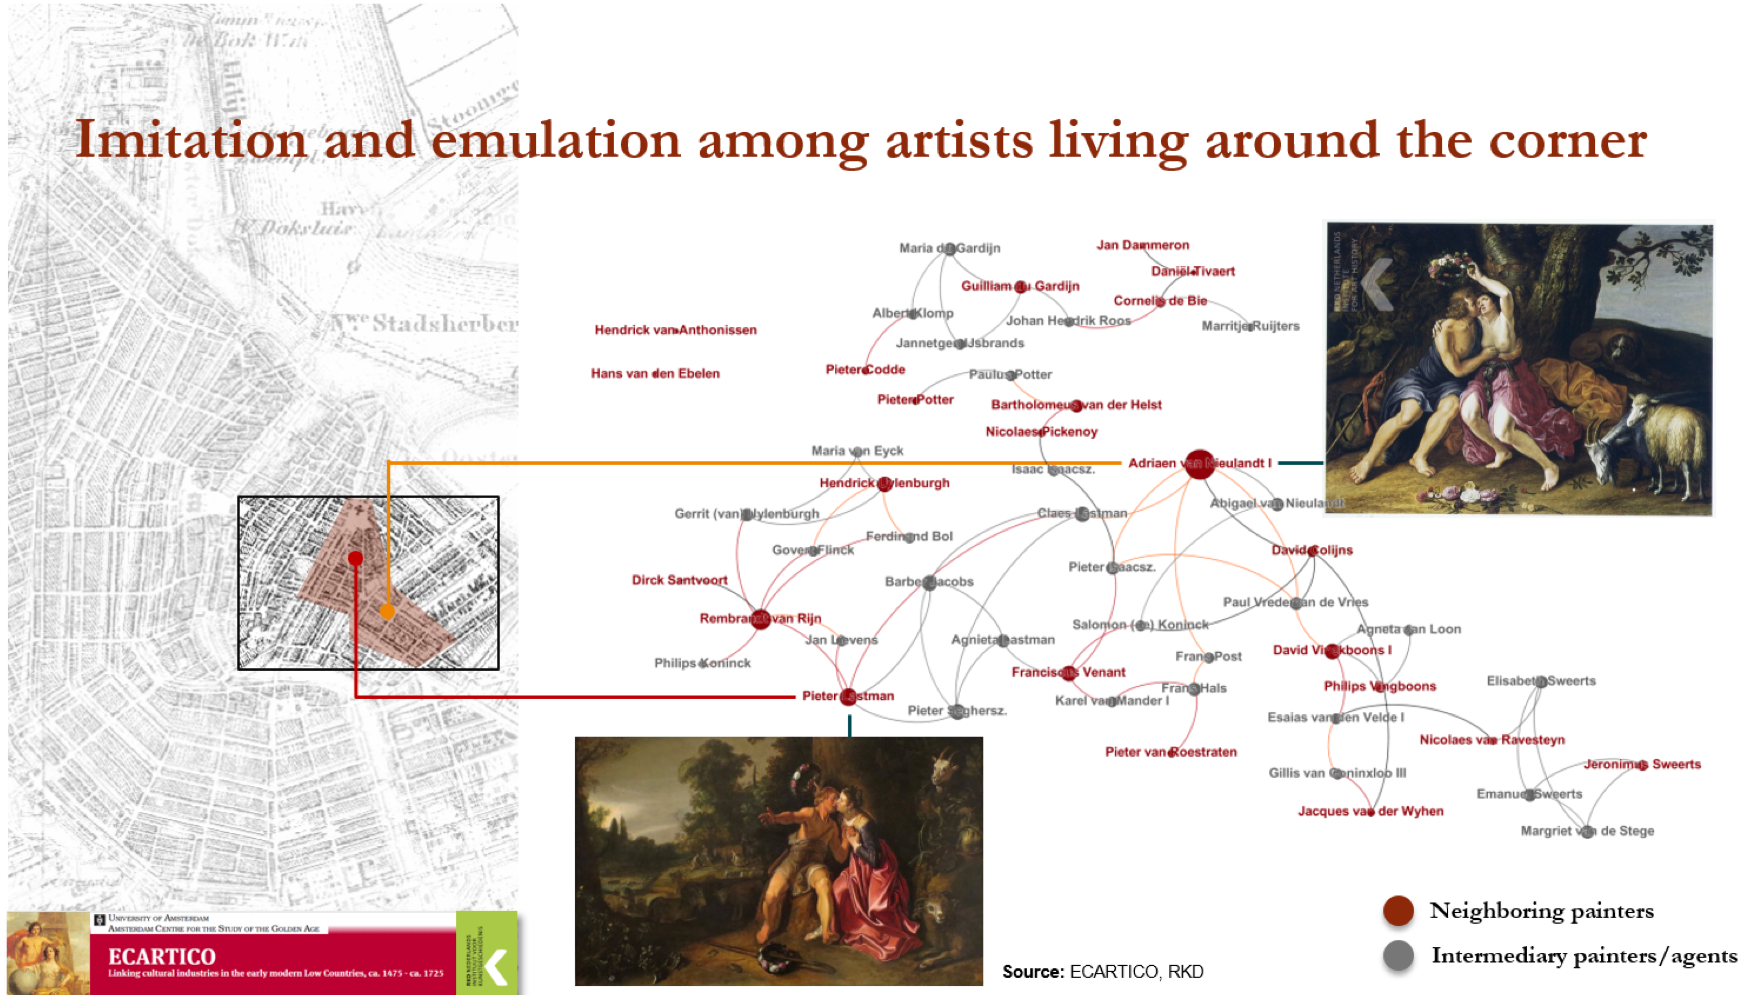 Imitation and emulation in Rembrandt's neighborhood